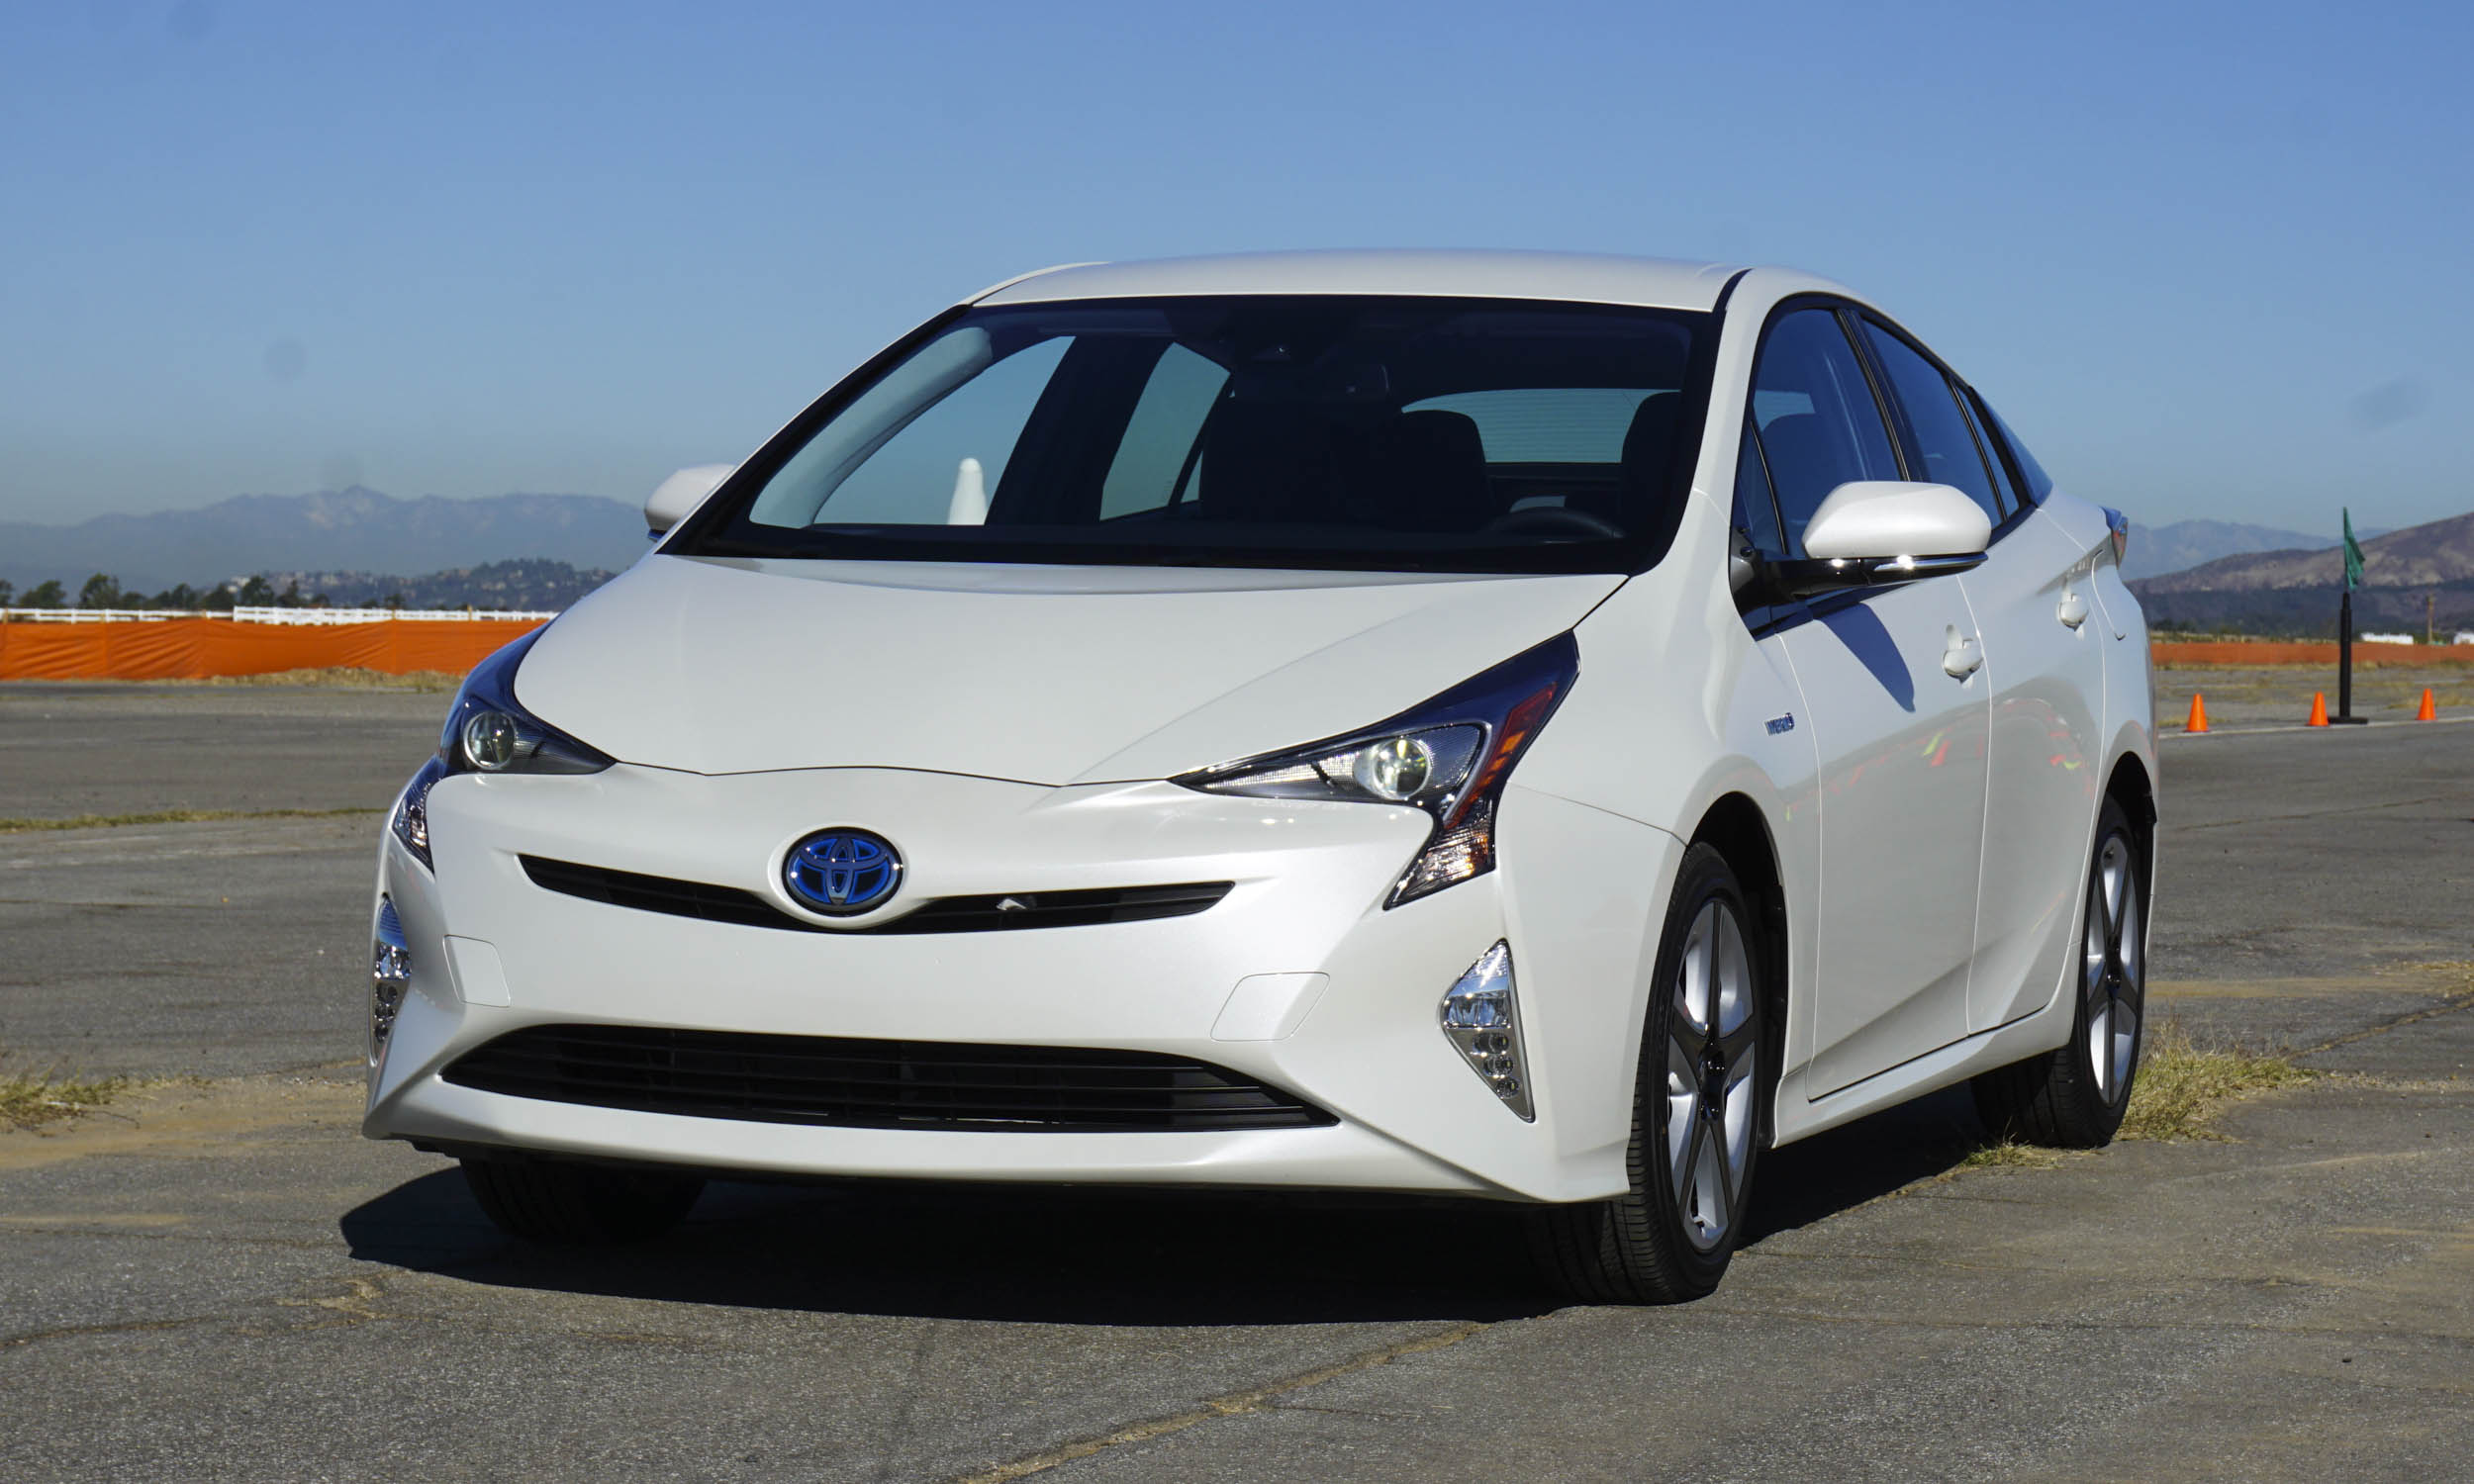 2017 Toyota Prius Review Performance Price 2016 Toyota Models | 2017 - 2018 Best Cars Reviews